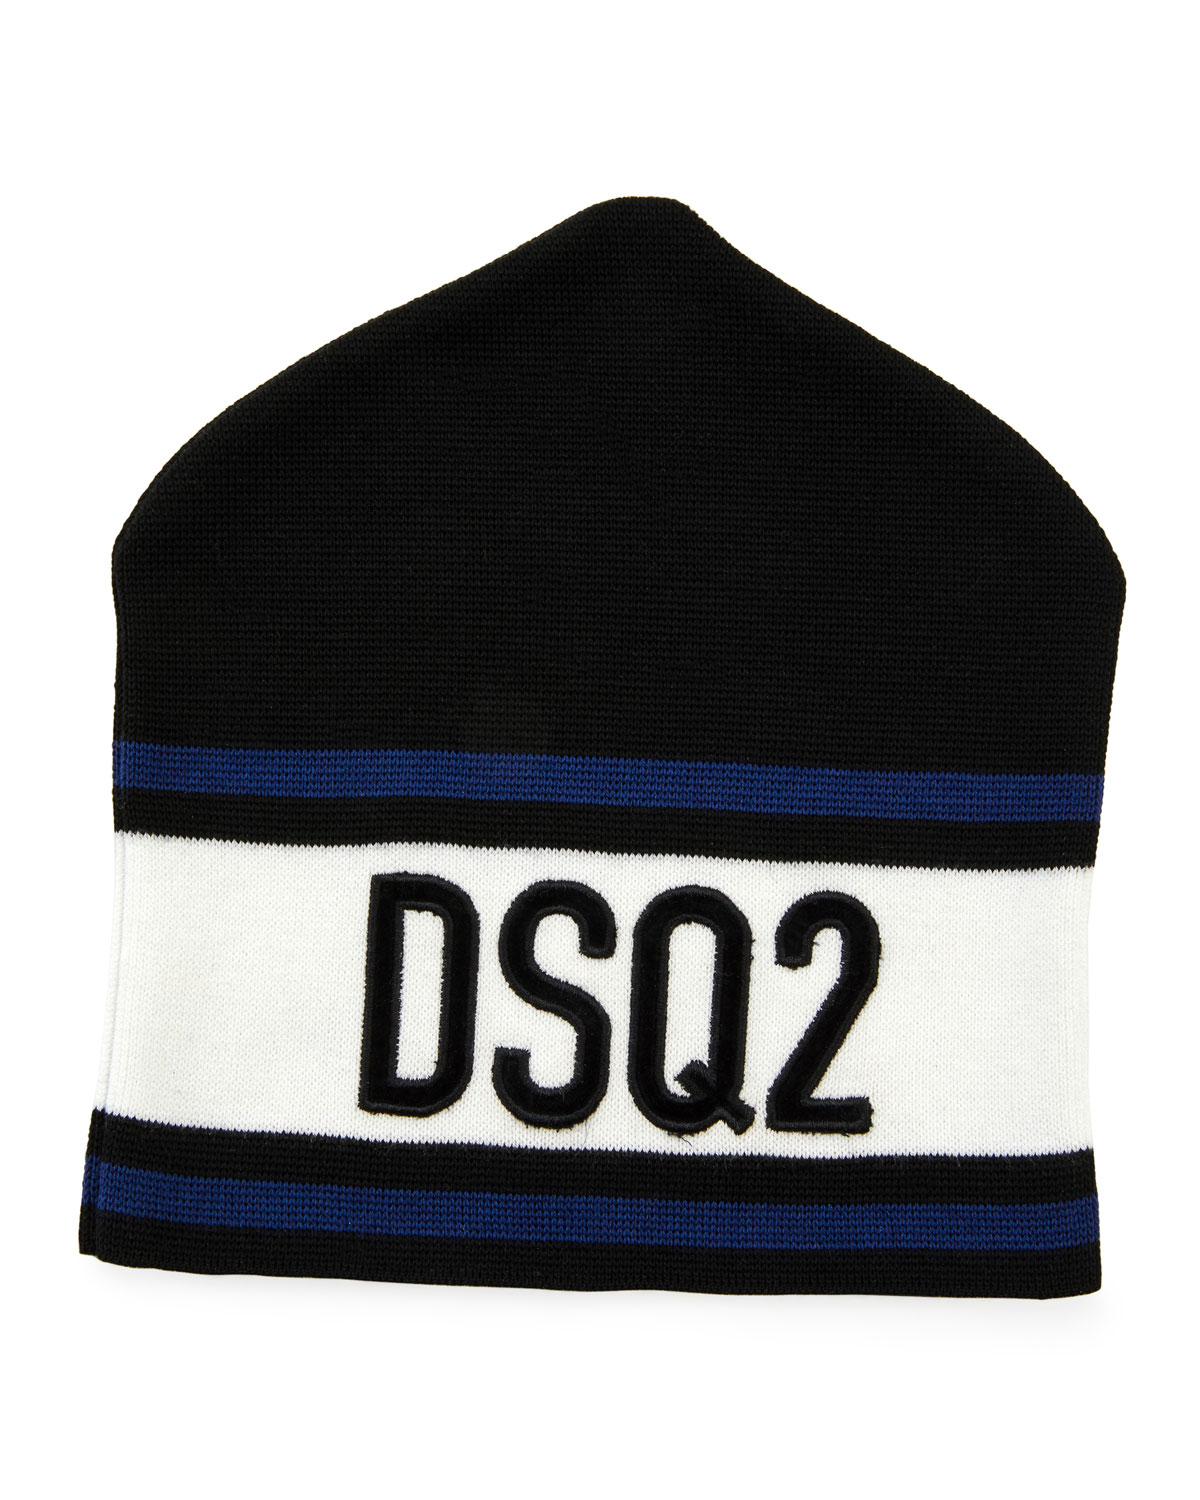 c186822cde6 Dsquared2 Men s Striped Logo Beanie Hat